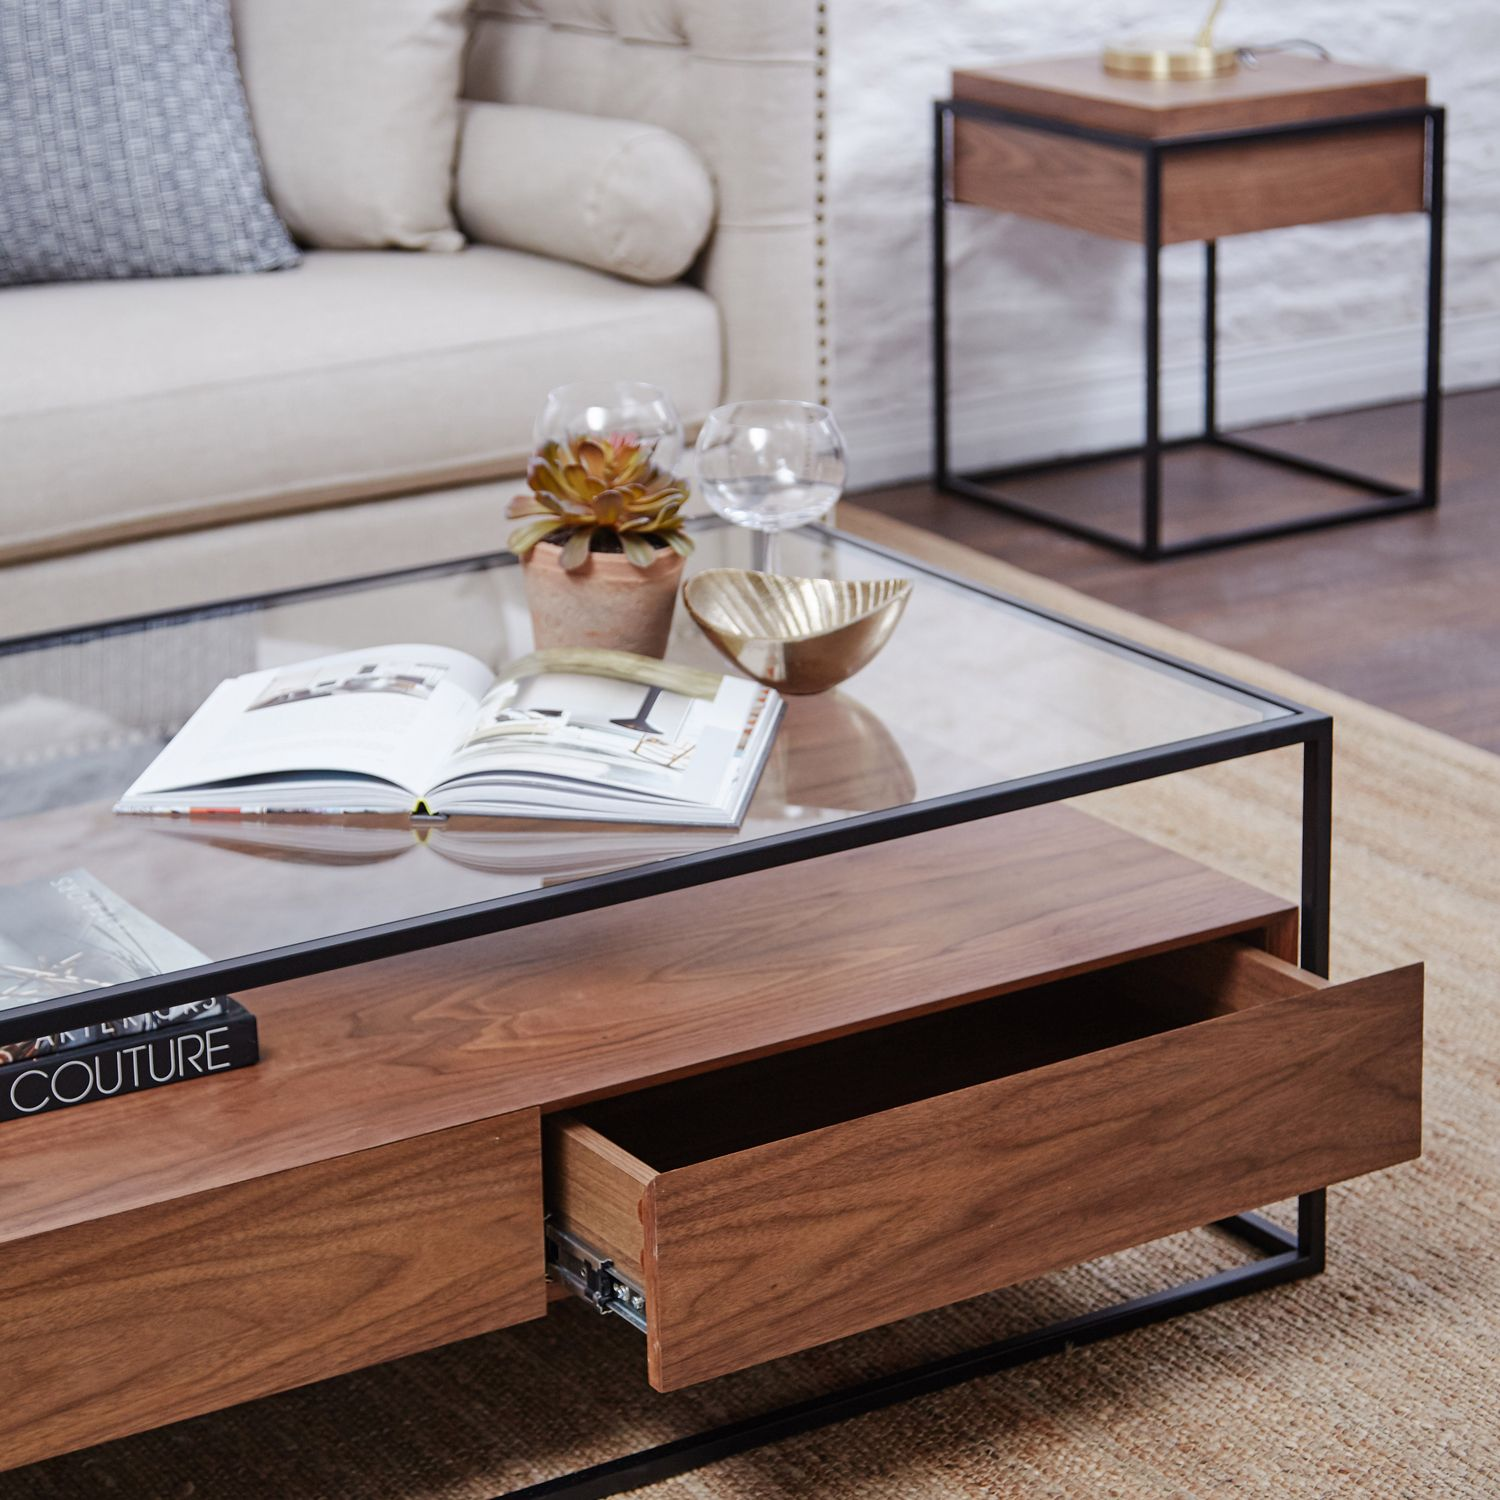 The Ashabi Coffee Table Is Expertly Crafted With The Finest Solid Walnut Is Fast On It S Way To Being To Being Aw17s Fa Coffee Table Table Glass Coffee Table [ 1500 x 1500 Pixel ]